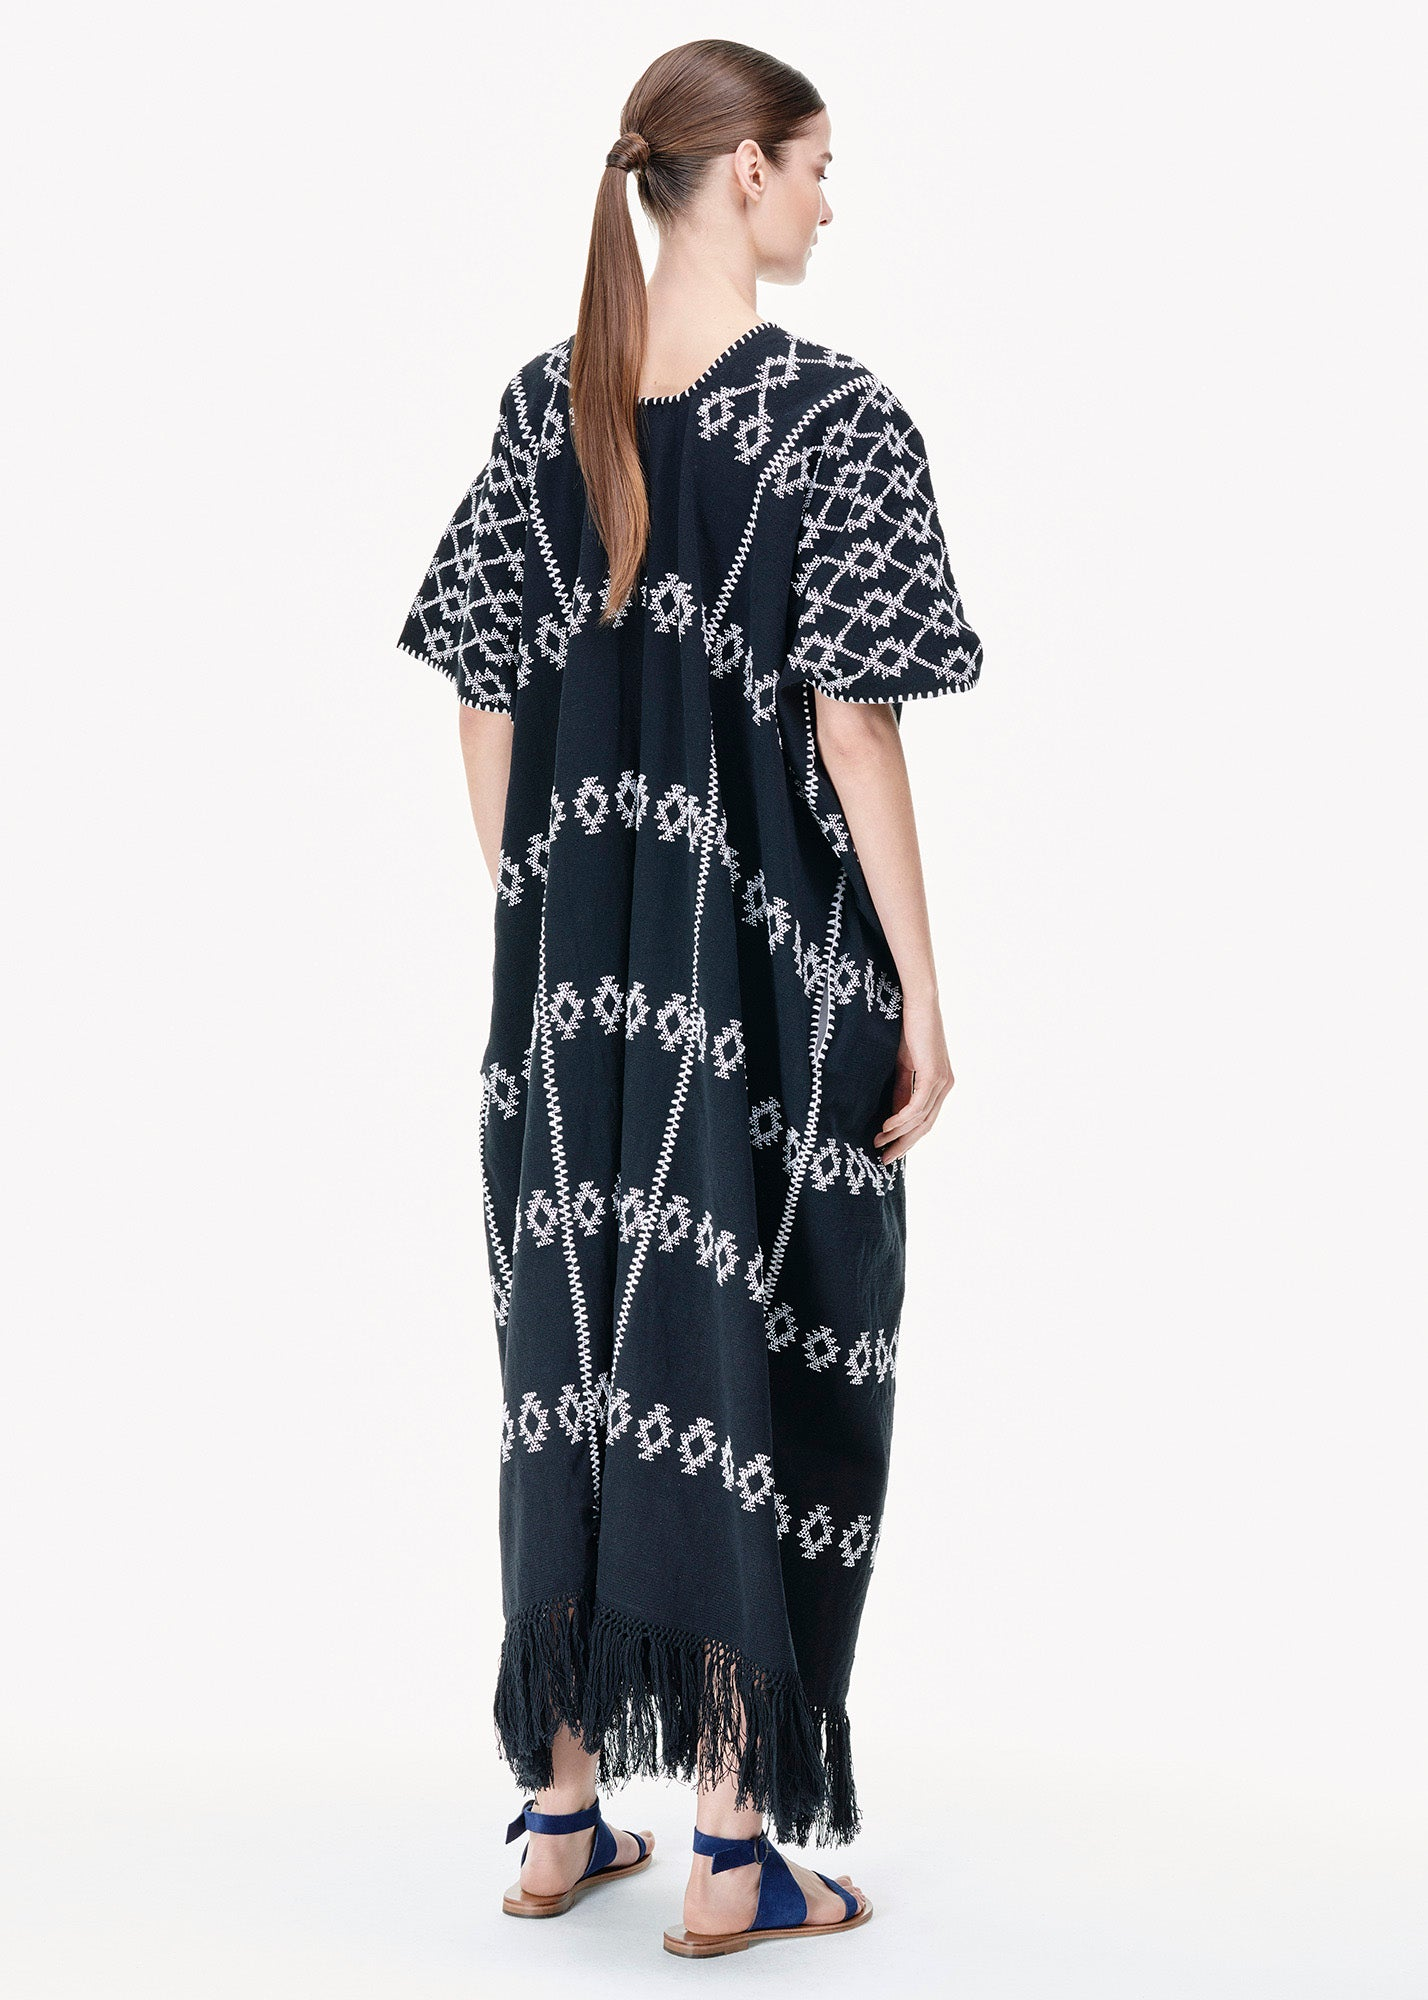 Three Panel Maxi Kaftan in Black/ White